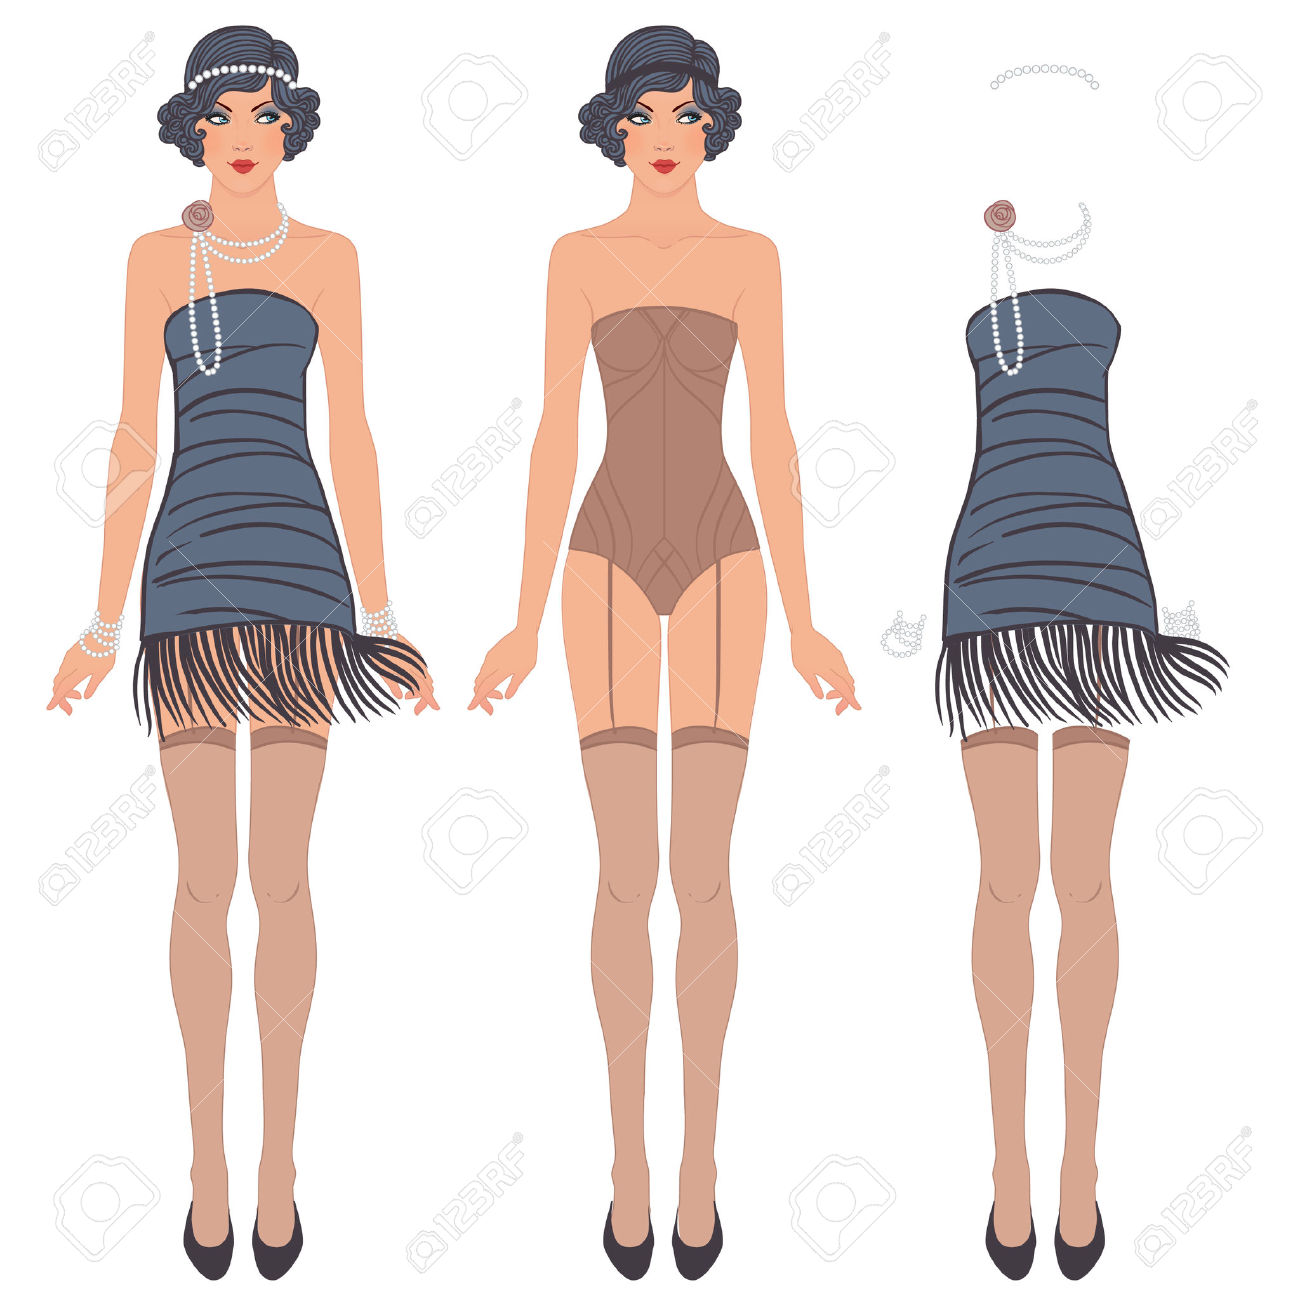 892 Flapper Stock Illustrations, Cliparts And Royalty Free Flapper.